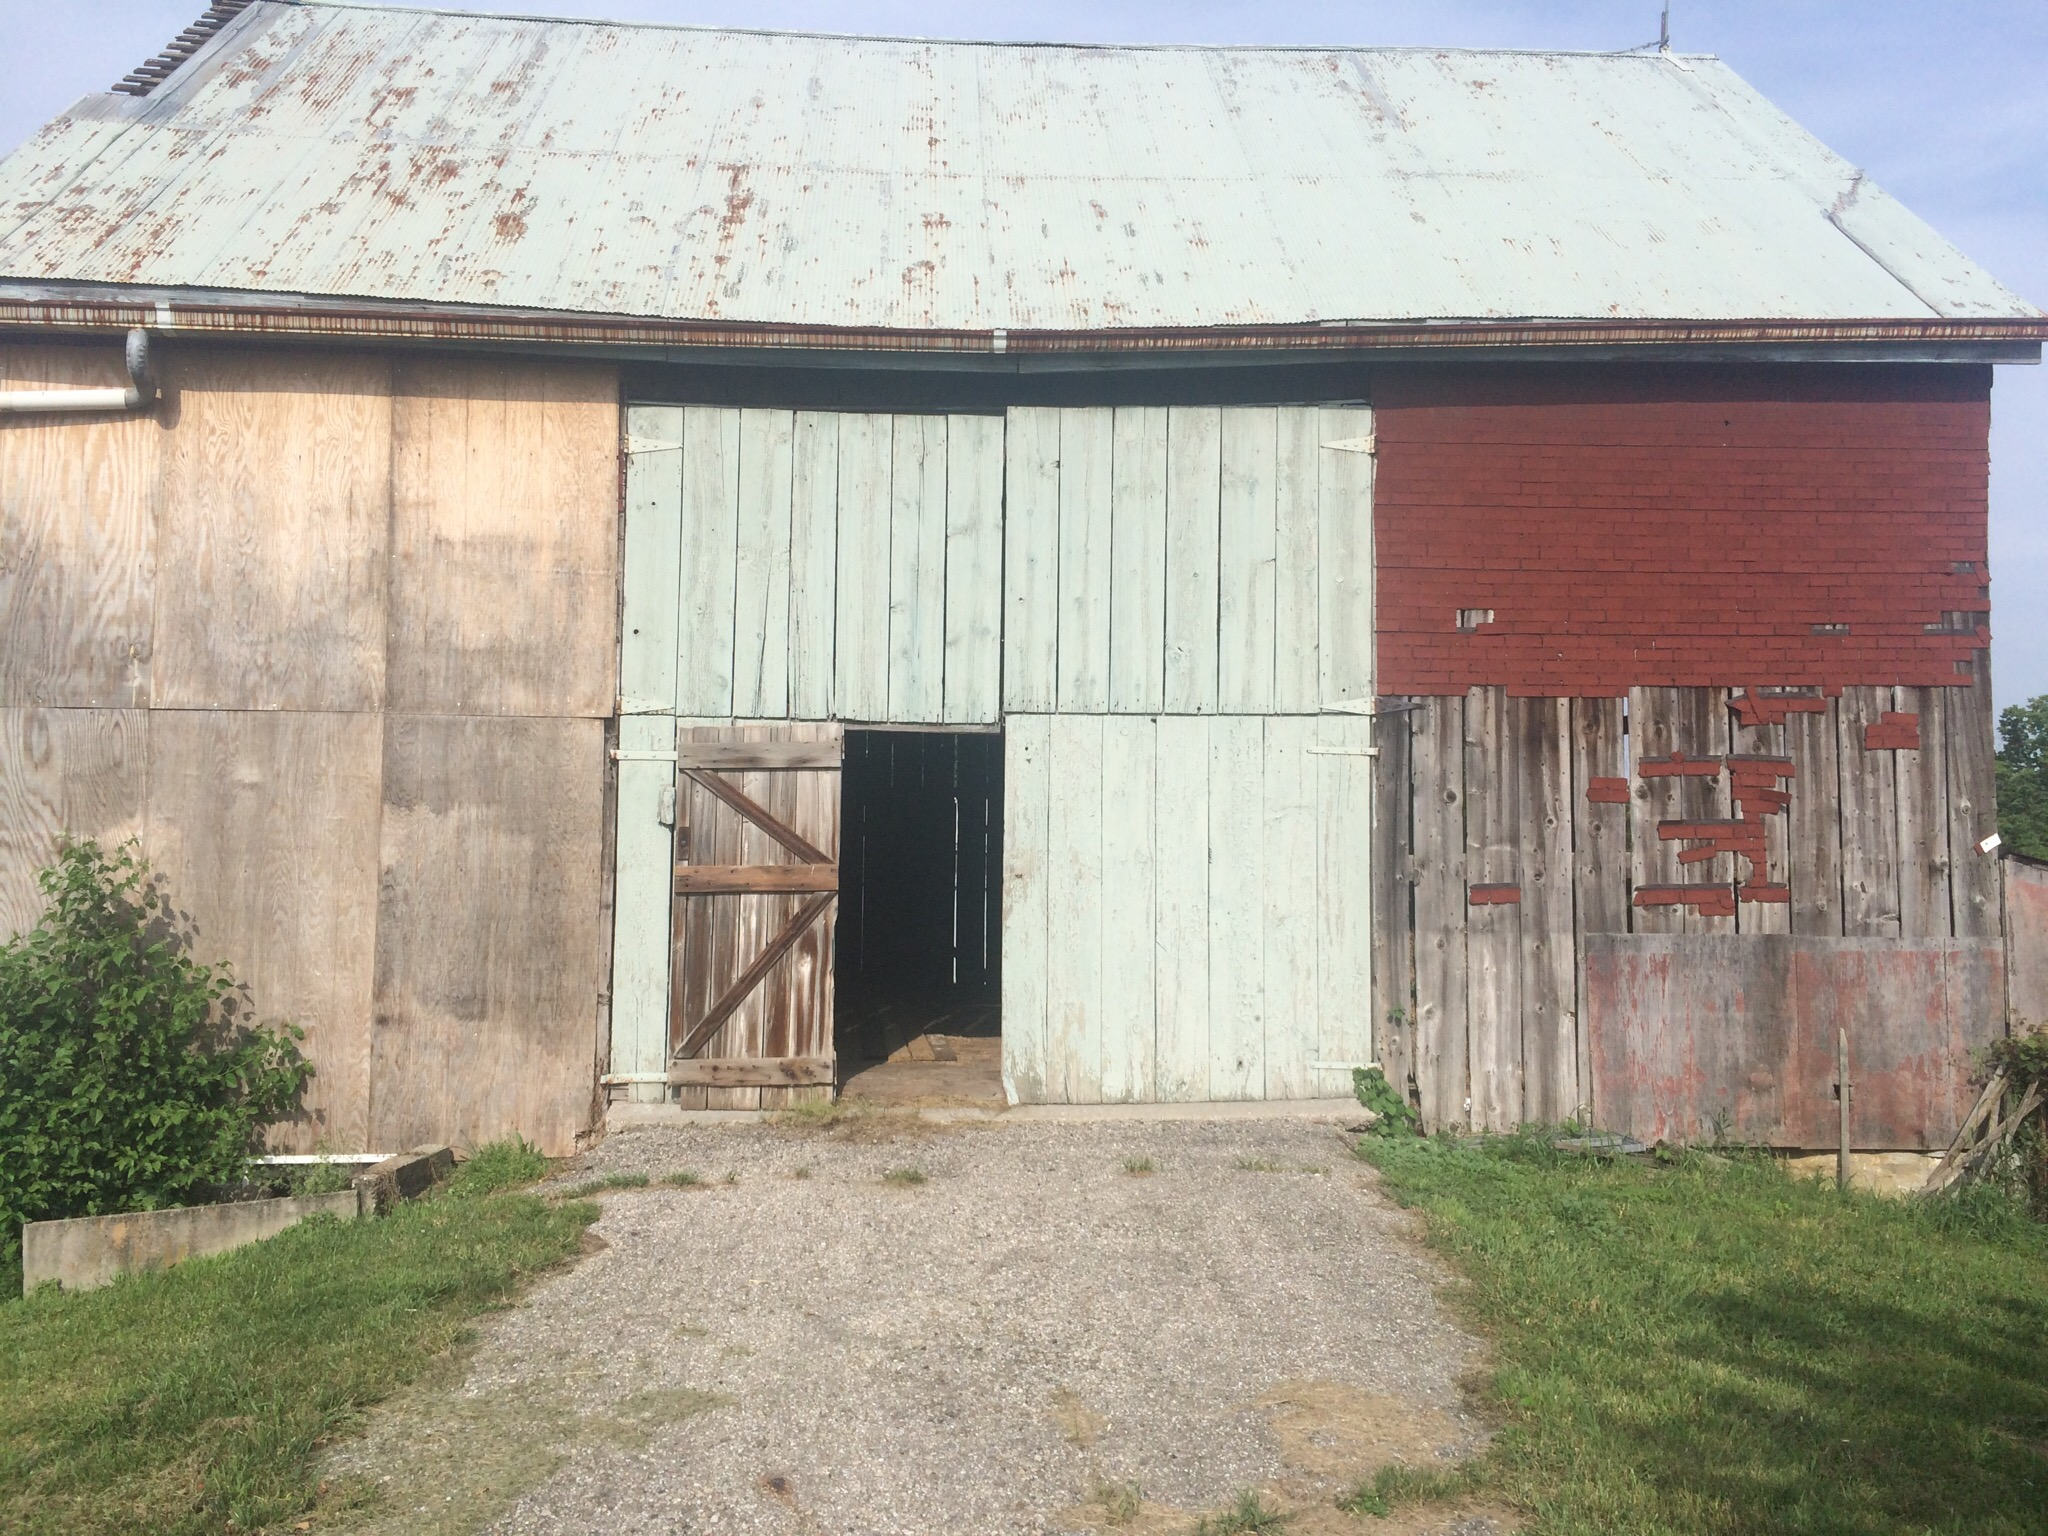 Green Township, OH- 110 year old barn, 2.5 stories, bank barn. 12″ pine siding. Currently in dismantling phase.